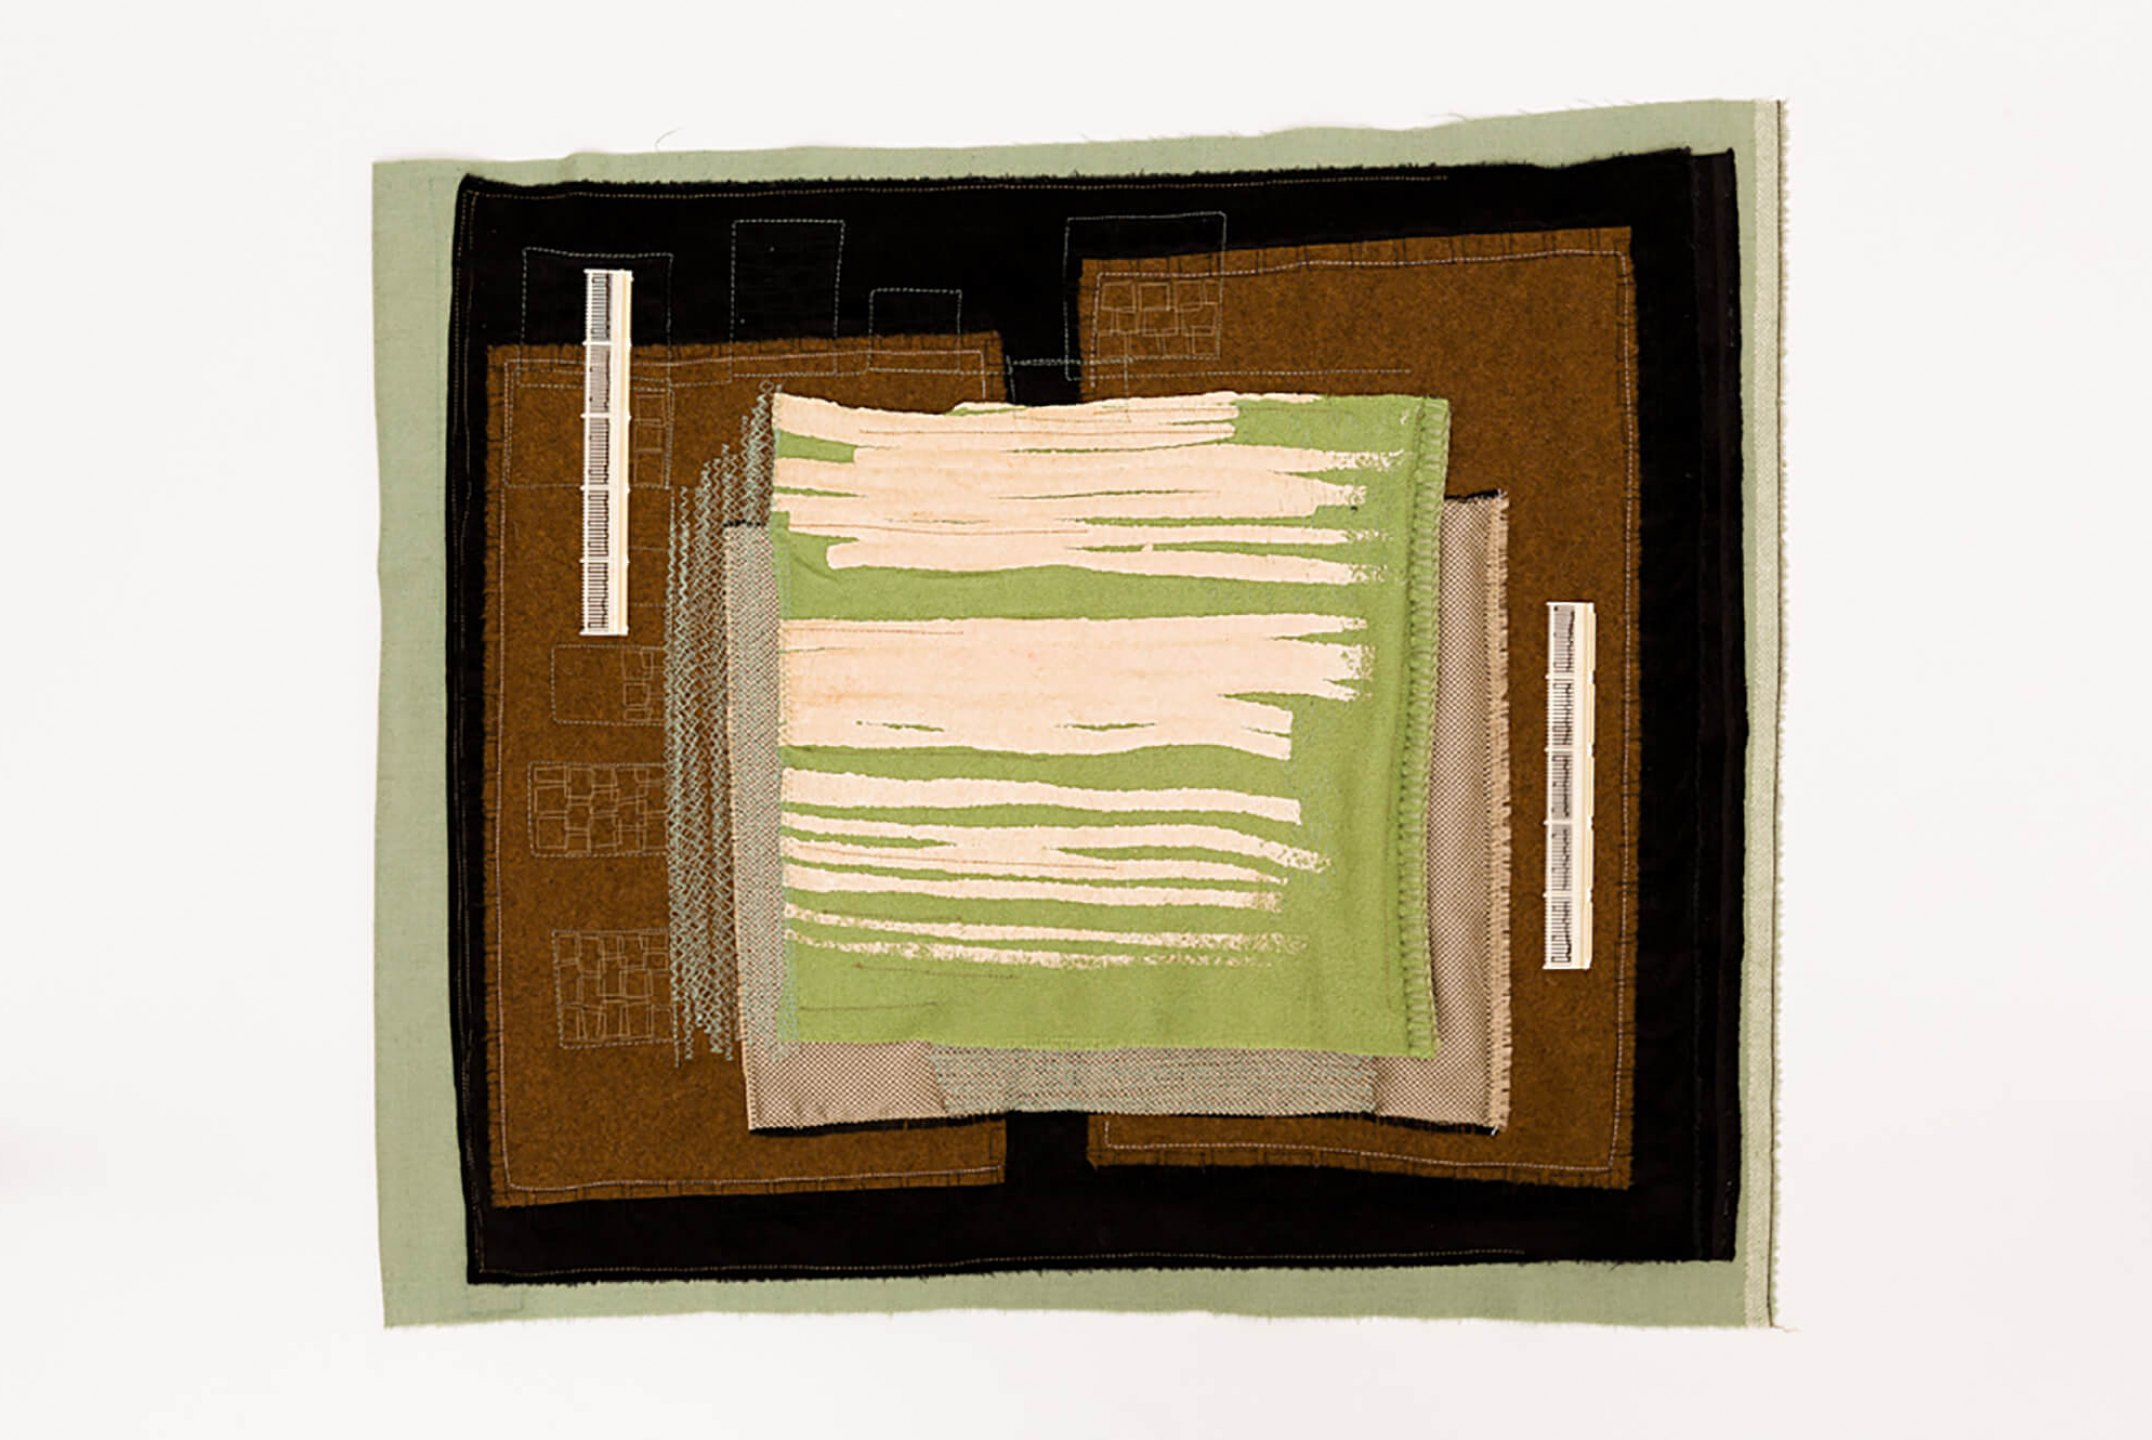 f.marquespenteado,<em>Passeios de Sean</em>, 2011, textile collage, printing on synthetic material, embroidery by hand and machine and plastic toy pieces, 64 × 56 cm - Mendes Wood DM